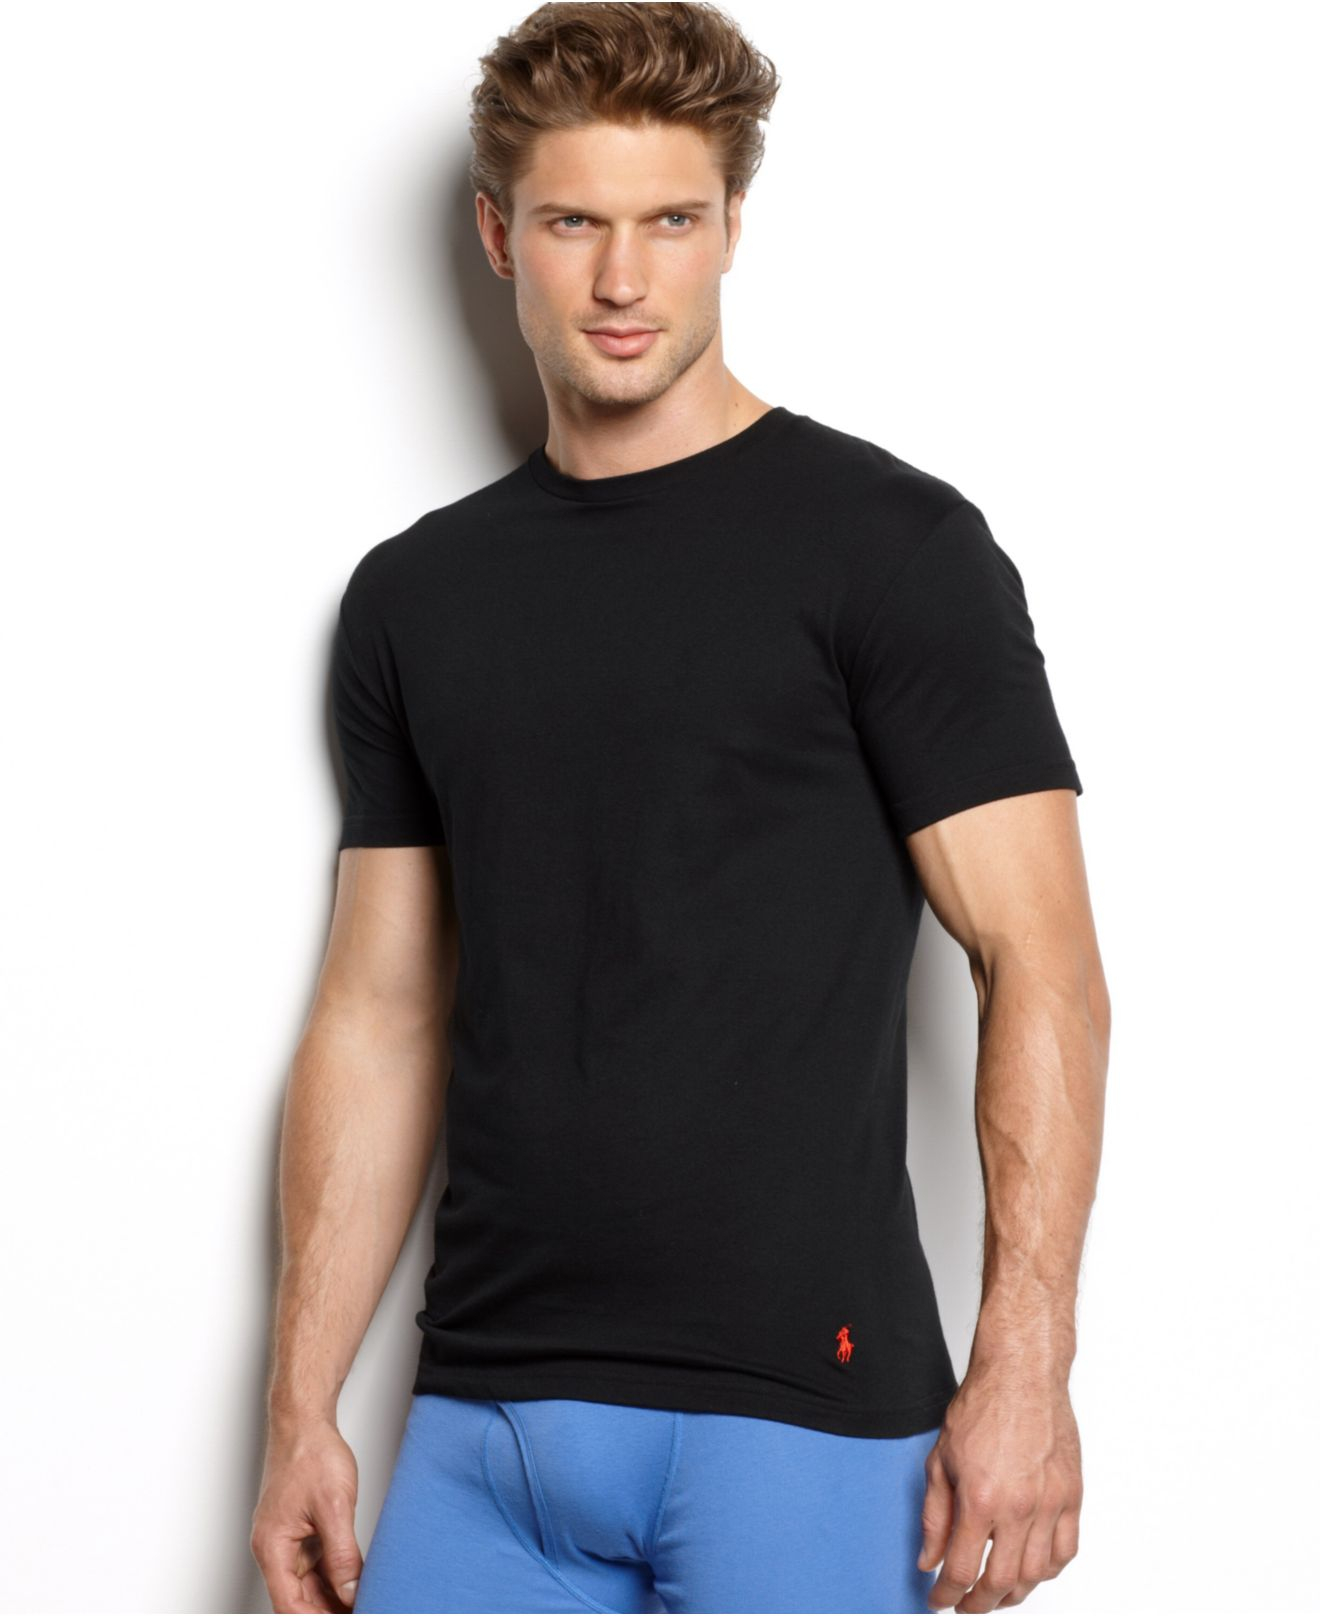 polo ralph lauren men 39 s underwear classic cotton crew t shirts 3 pack in multicolor for men lyst. Black Bedroom Furniture Sets. Home Design Ideas